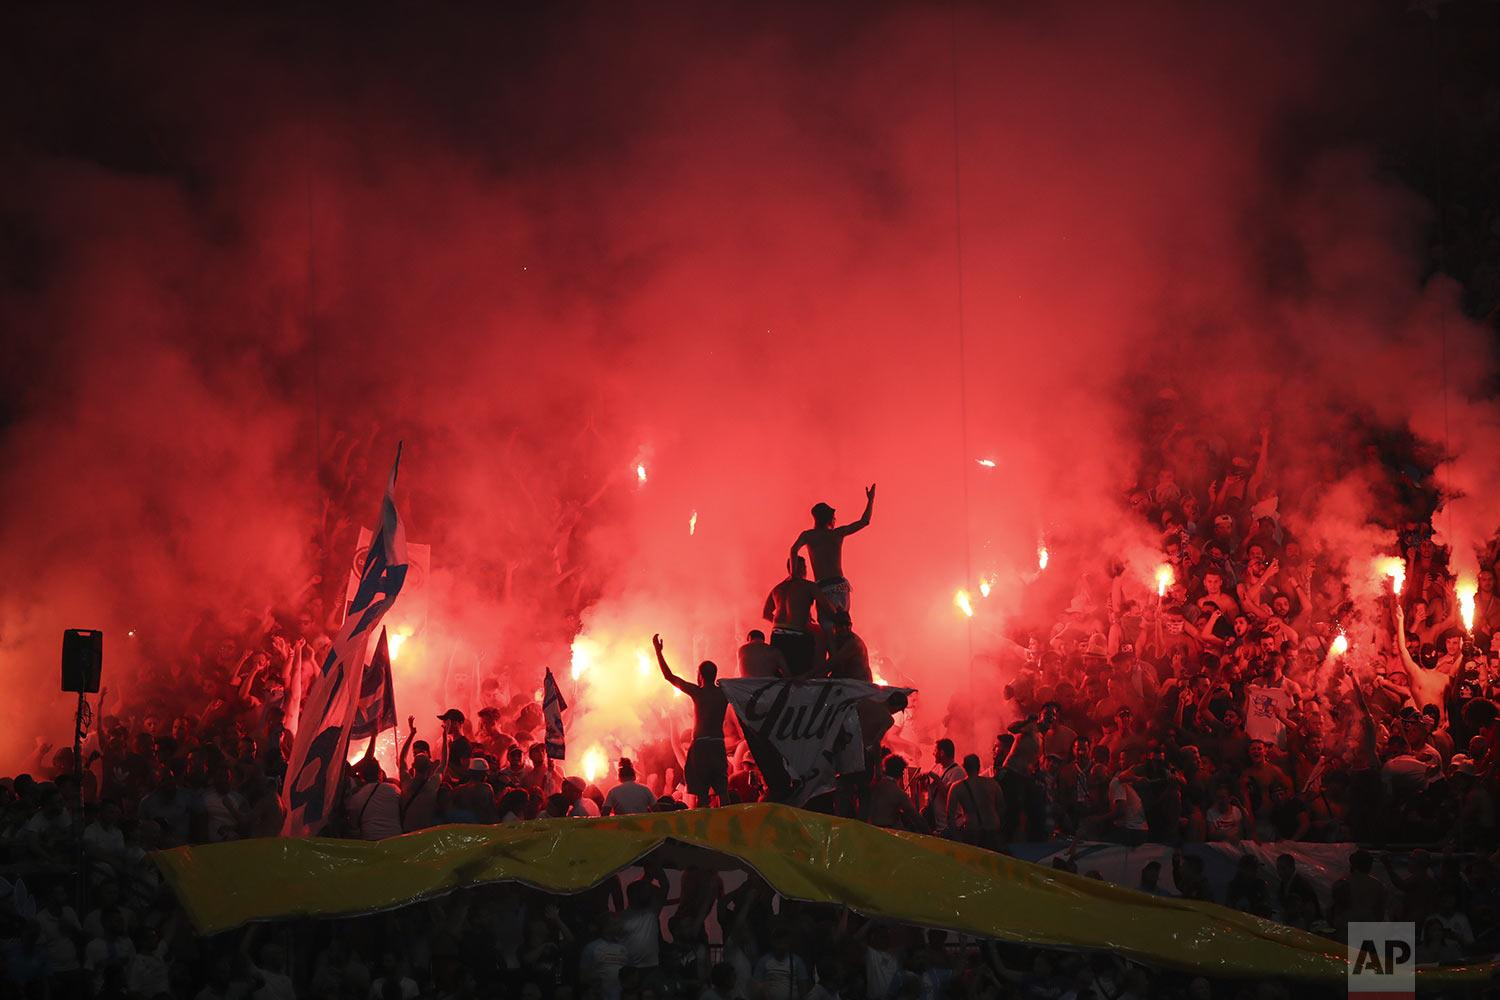 Olympique de Marseille supporters, 2019.